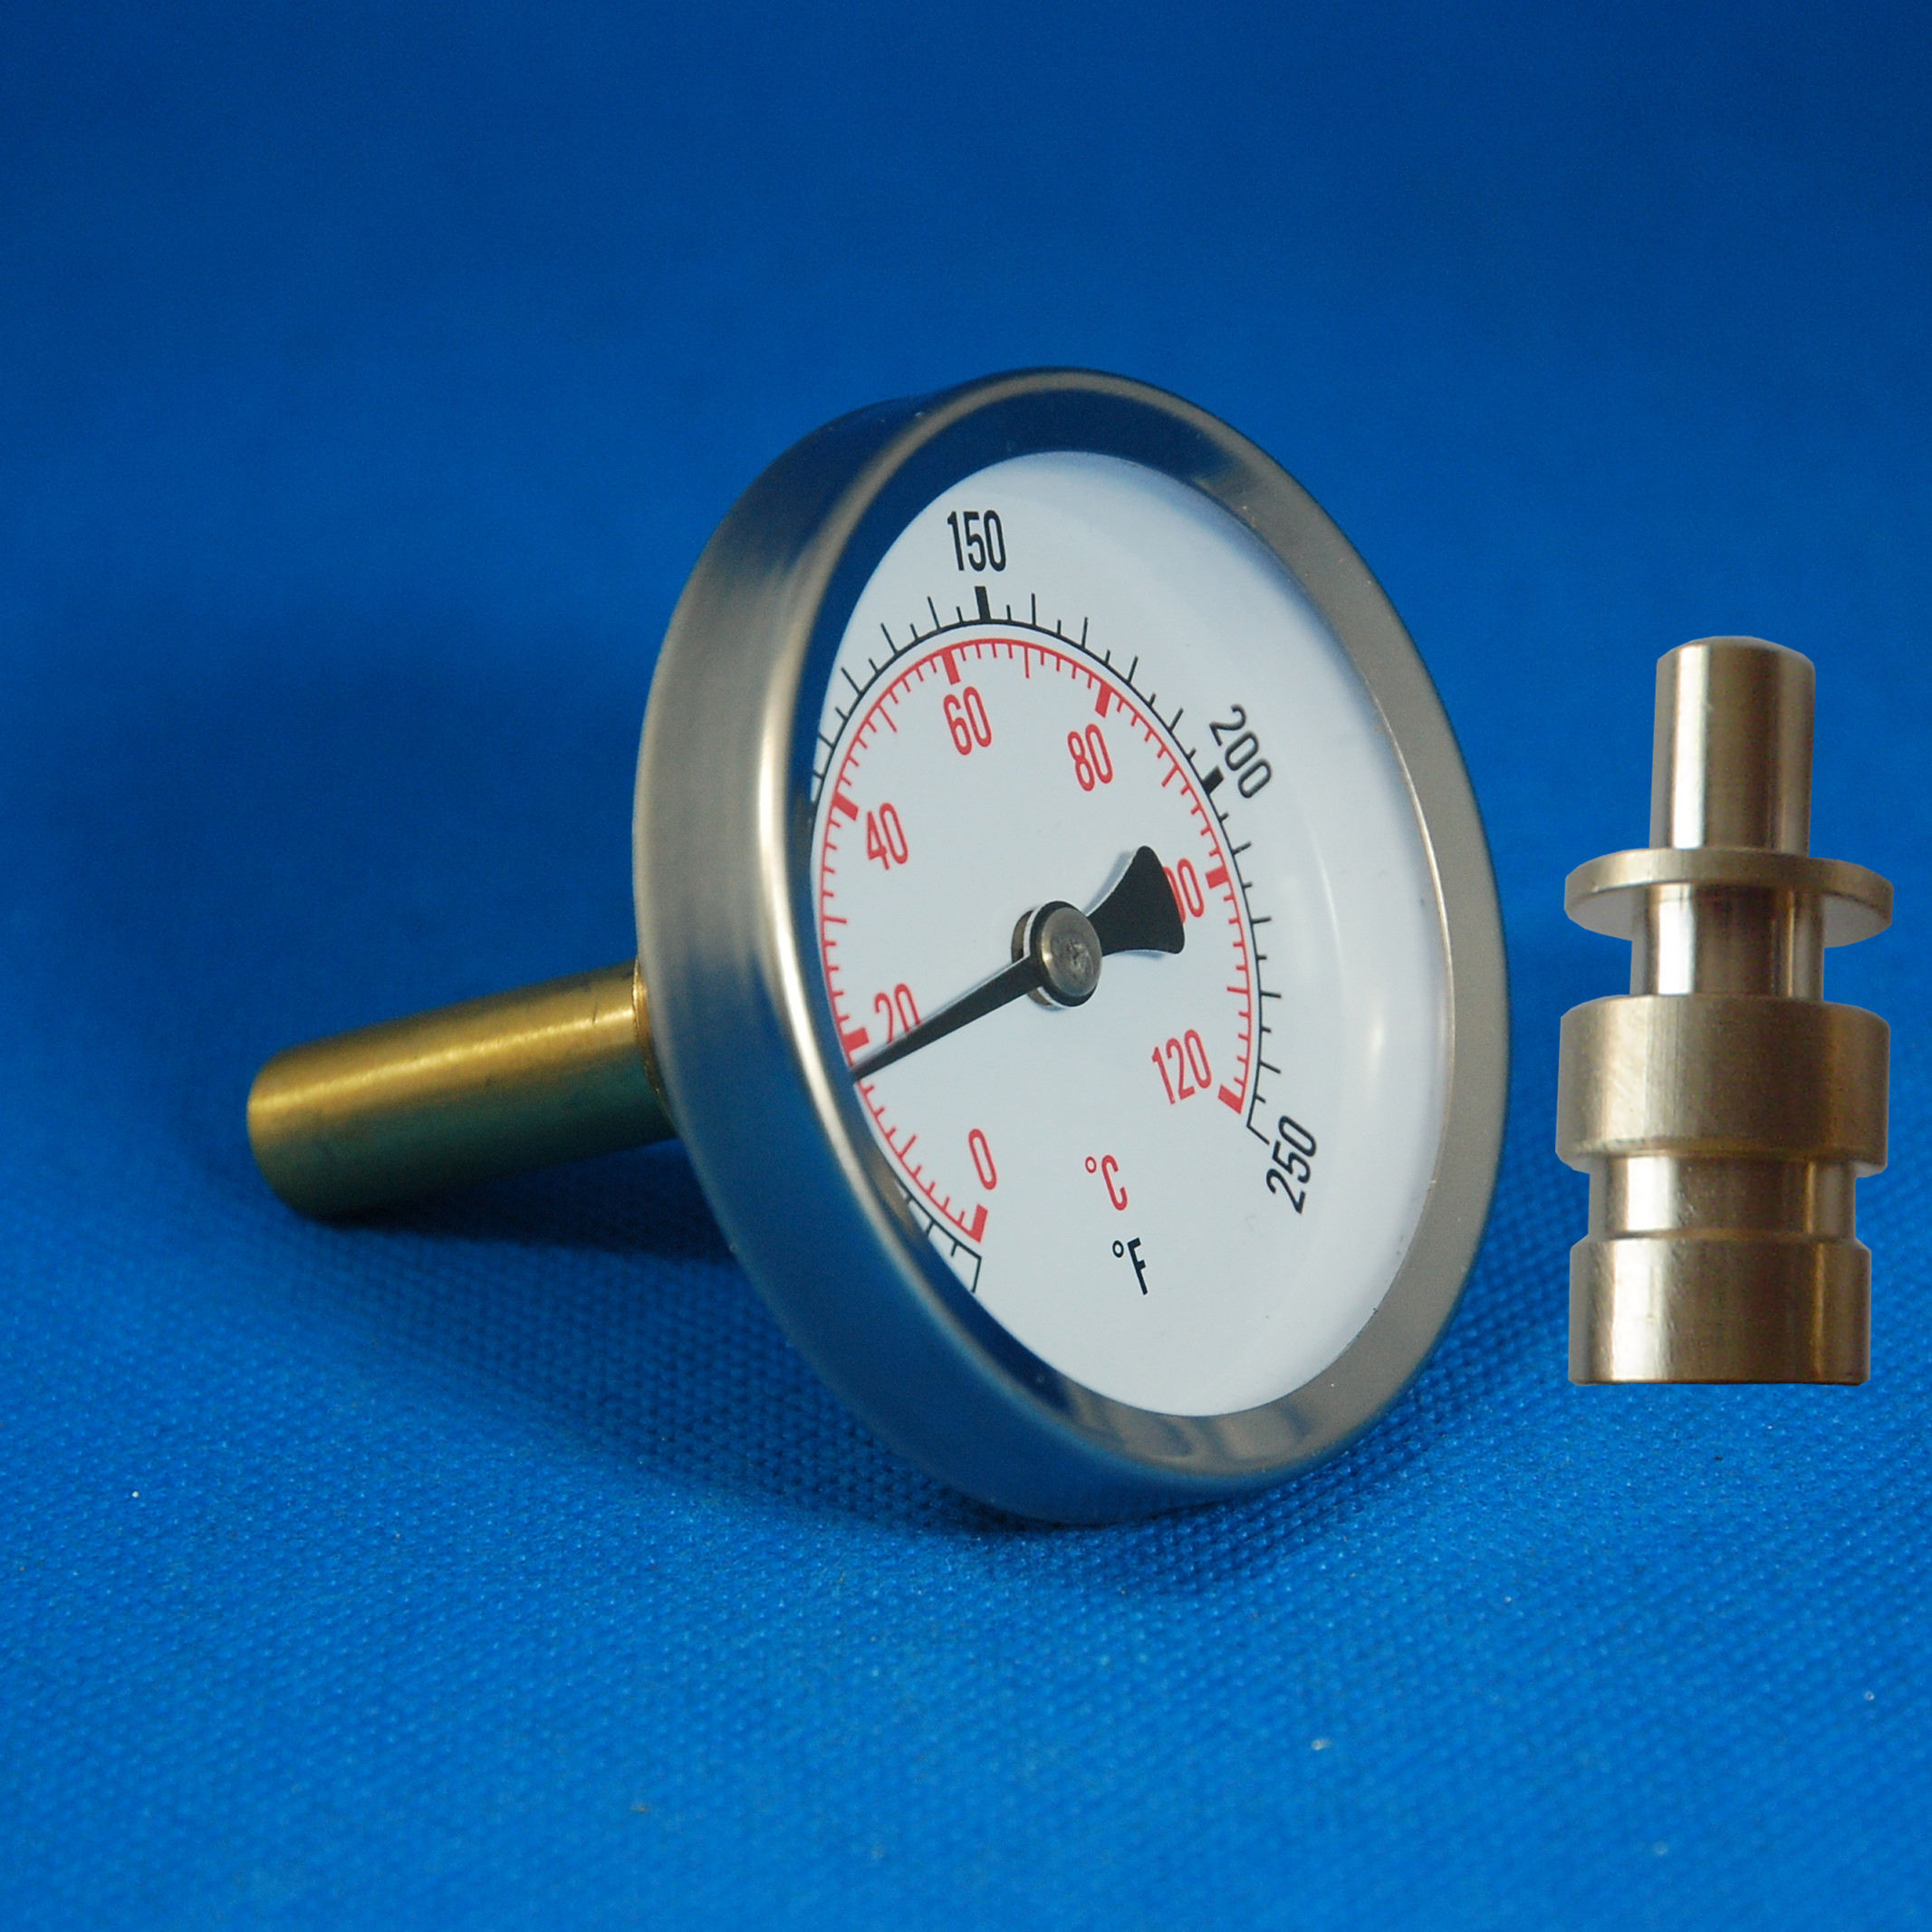 Bimetal pipe thermometer 0-120C with pocket